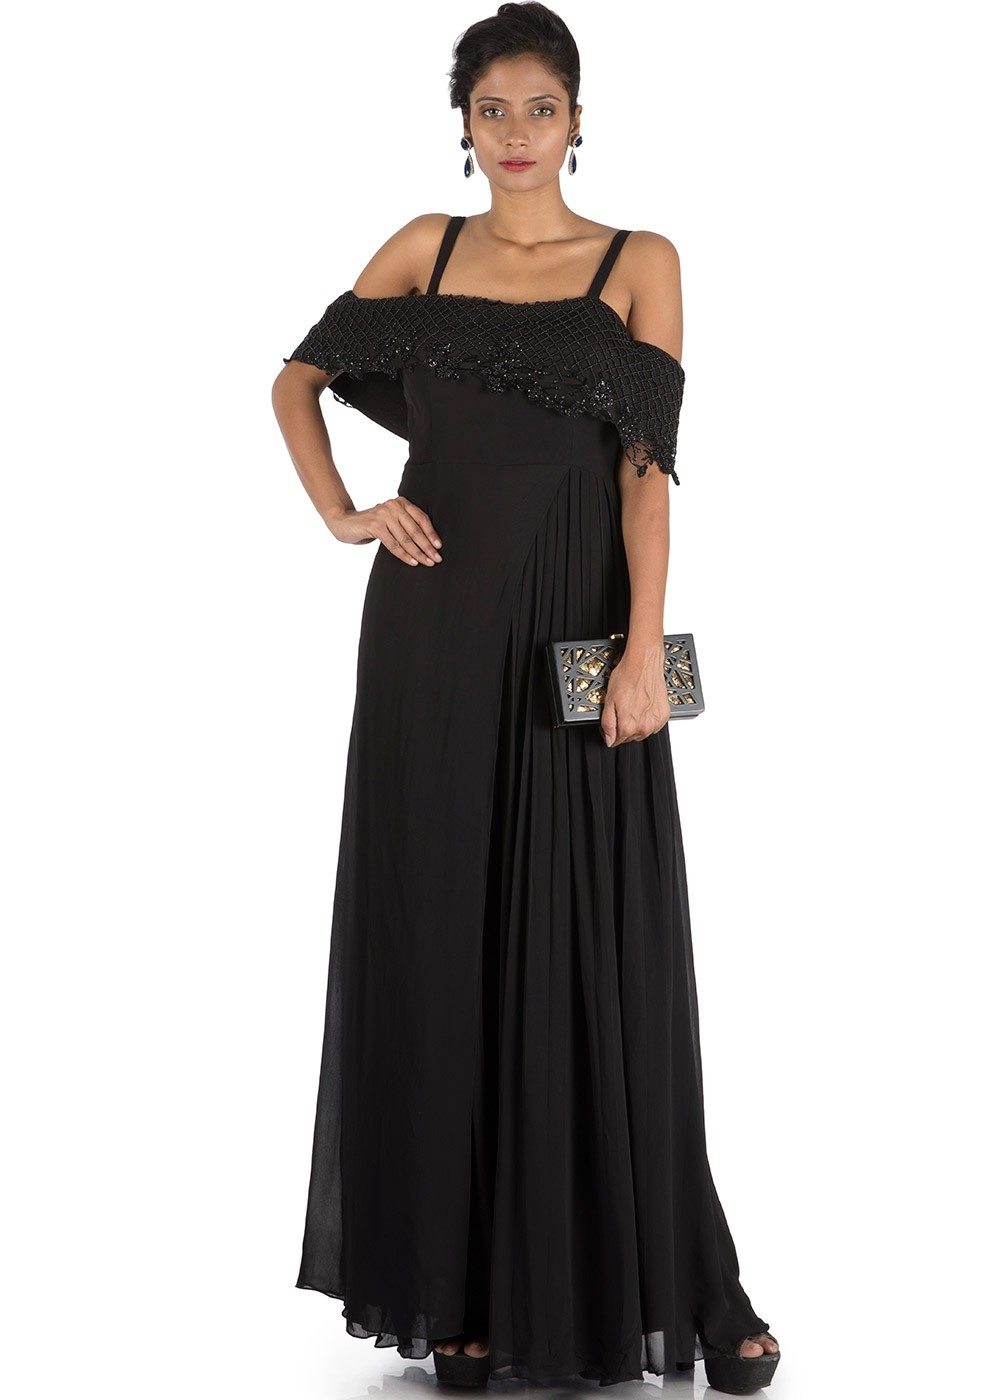 4c52b85410c Black Flared Jumpsuit With Attached Cape 354KR07